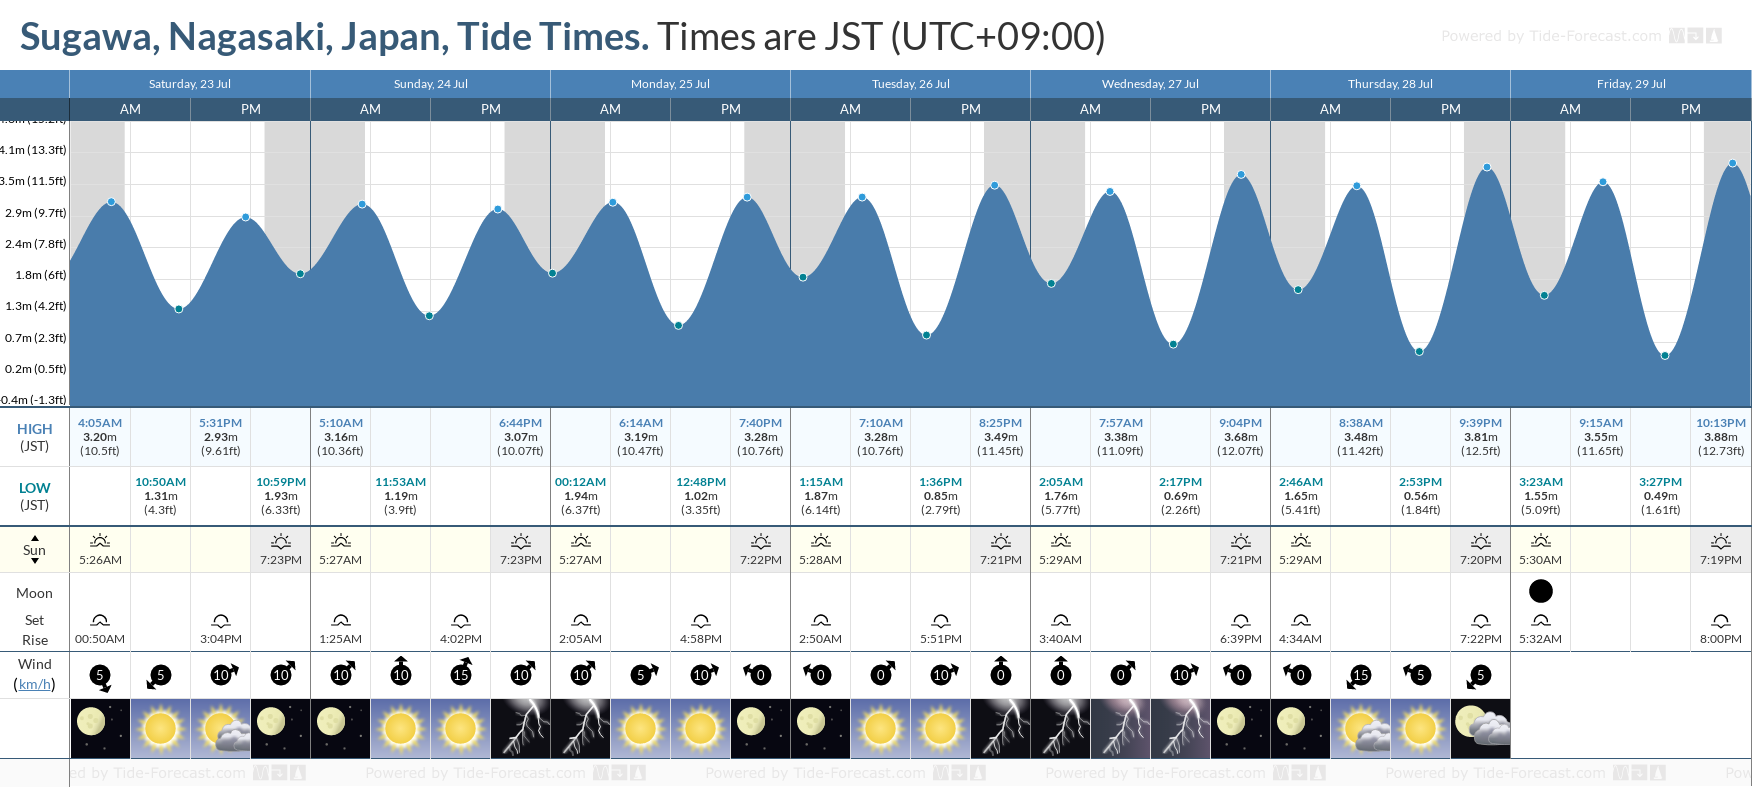 Sugawa, Nagasaki, Japan Tide Chart including high and low tide tide times for the next 7 days